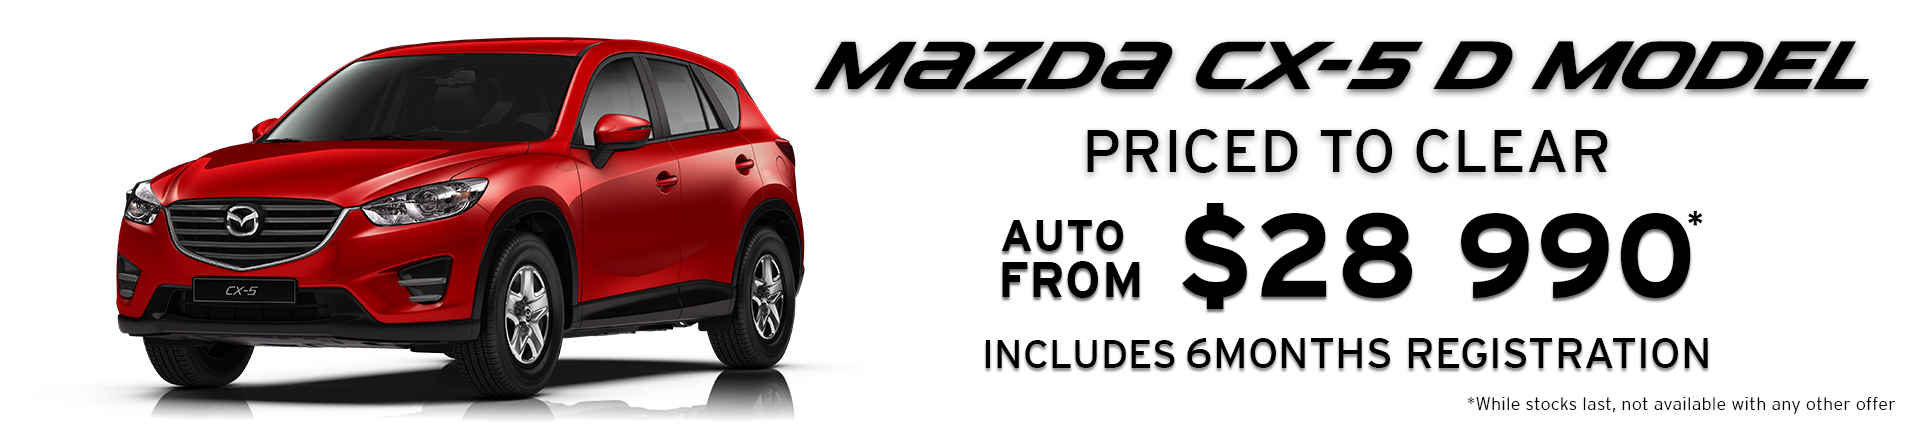 Offers Exclusive to Bayswater Mazda